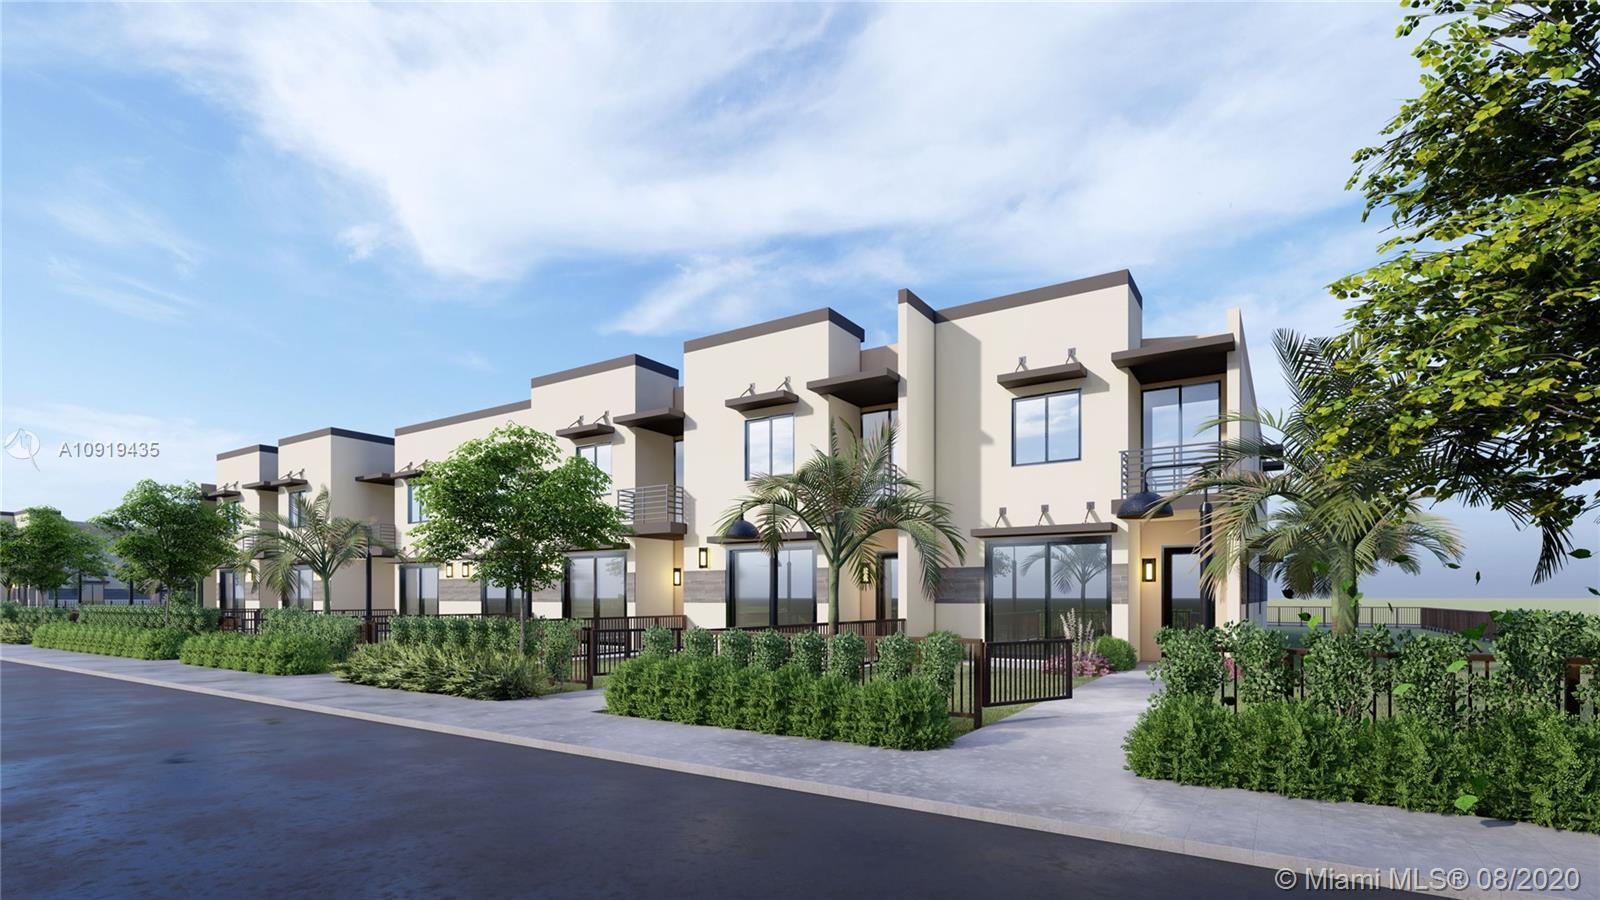 COMING SOON! Croissant Park's newest luxury townhome development. These contemporary townhomes boast